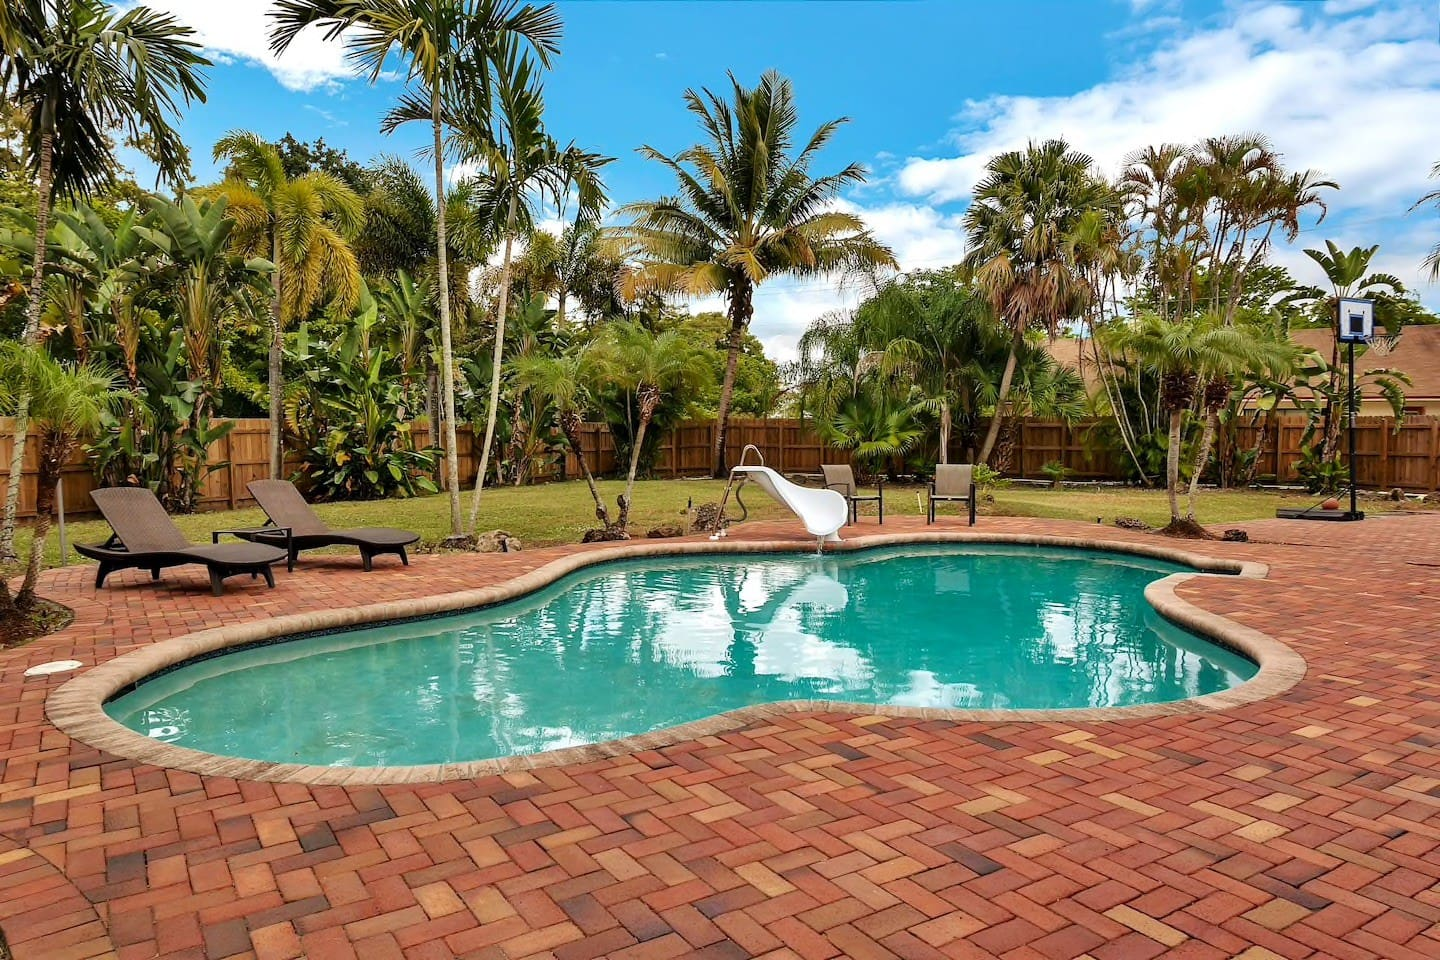 Relax in a private saltwater pool oasis. Yes there's a BBQ grill included. All that's missing is you and your crew :)